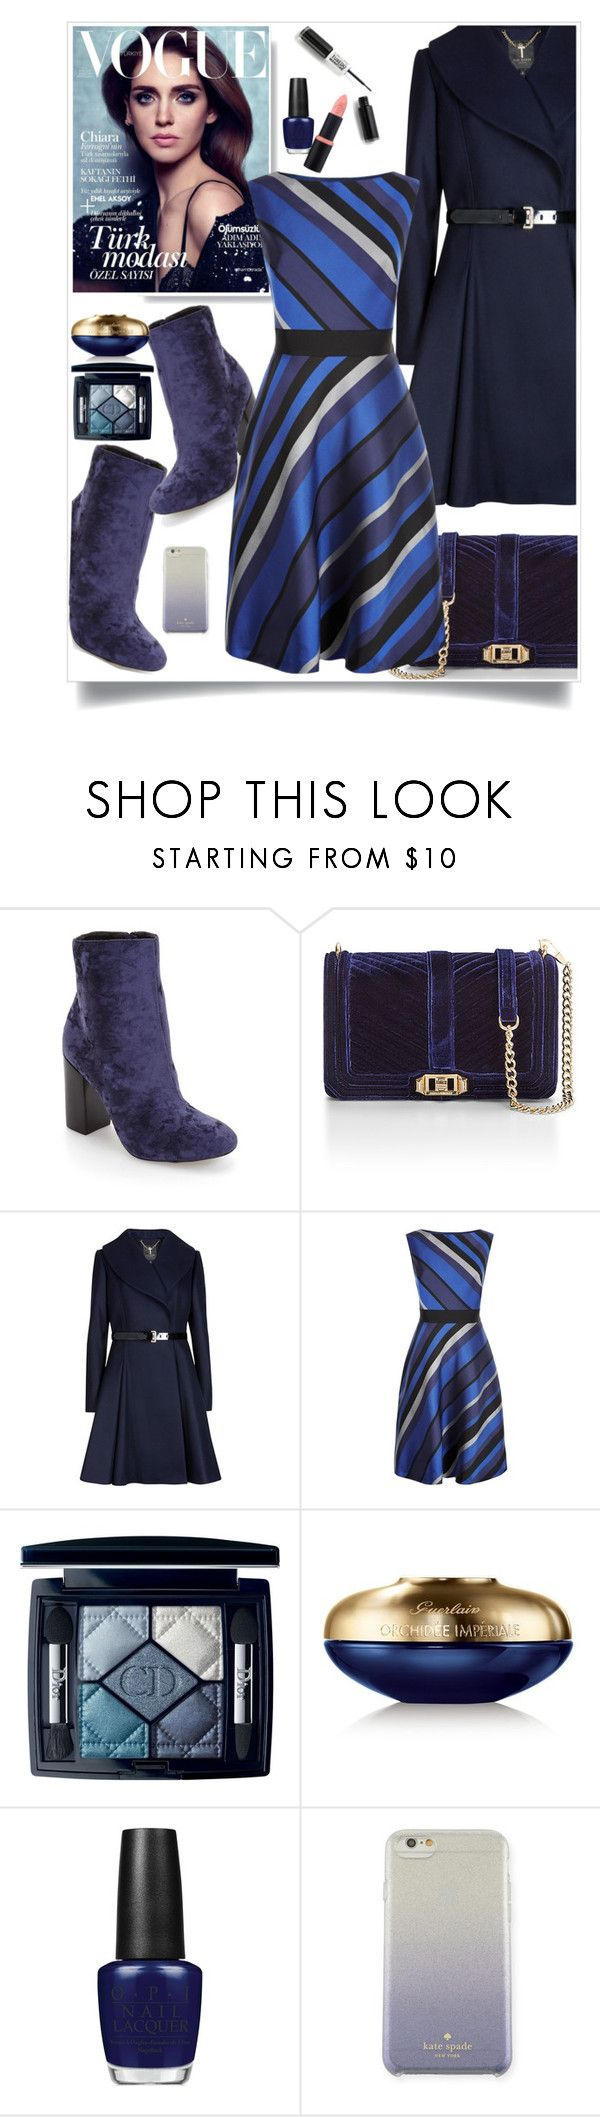 """Workwear"" by hani-bgd ❤ liked on Polyvore featuring Rebecca Minkoff, Ted Baker, Fenn Wright Manson, Christian Dior, Guerlain, OPI, Kate Spade and WorkWear"